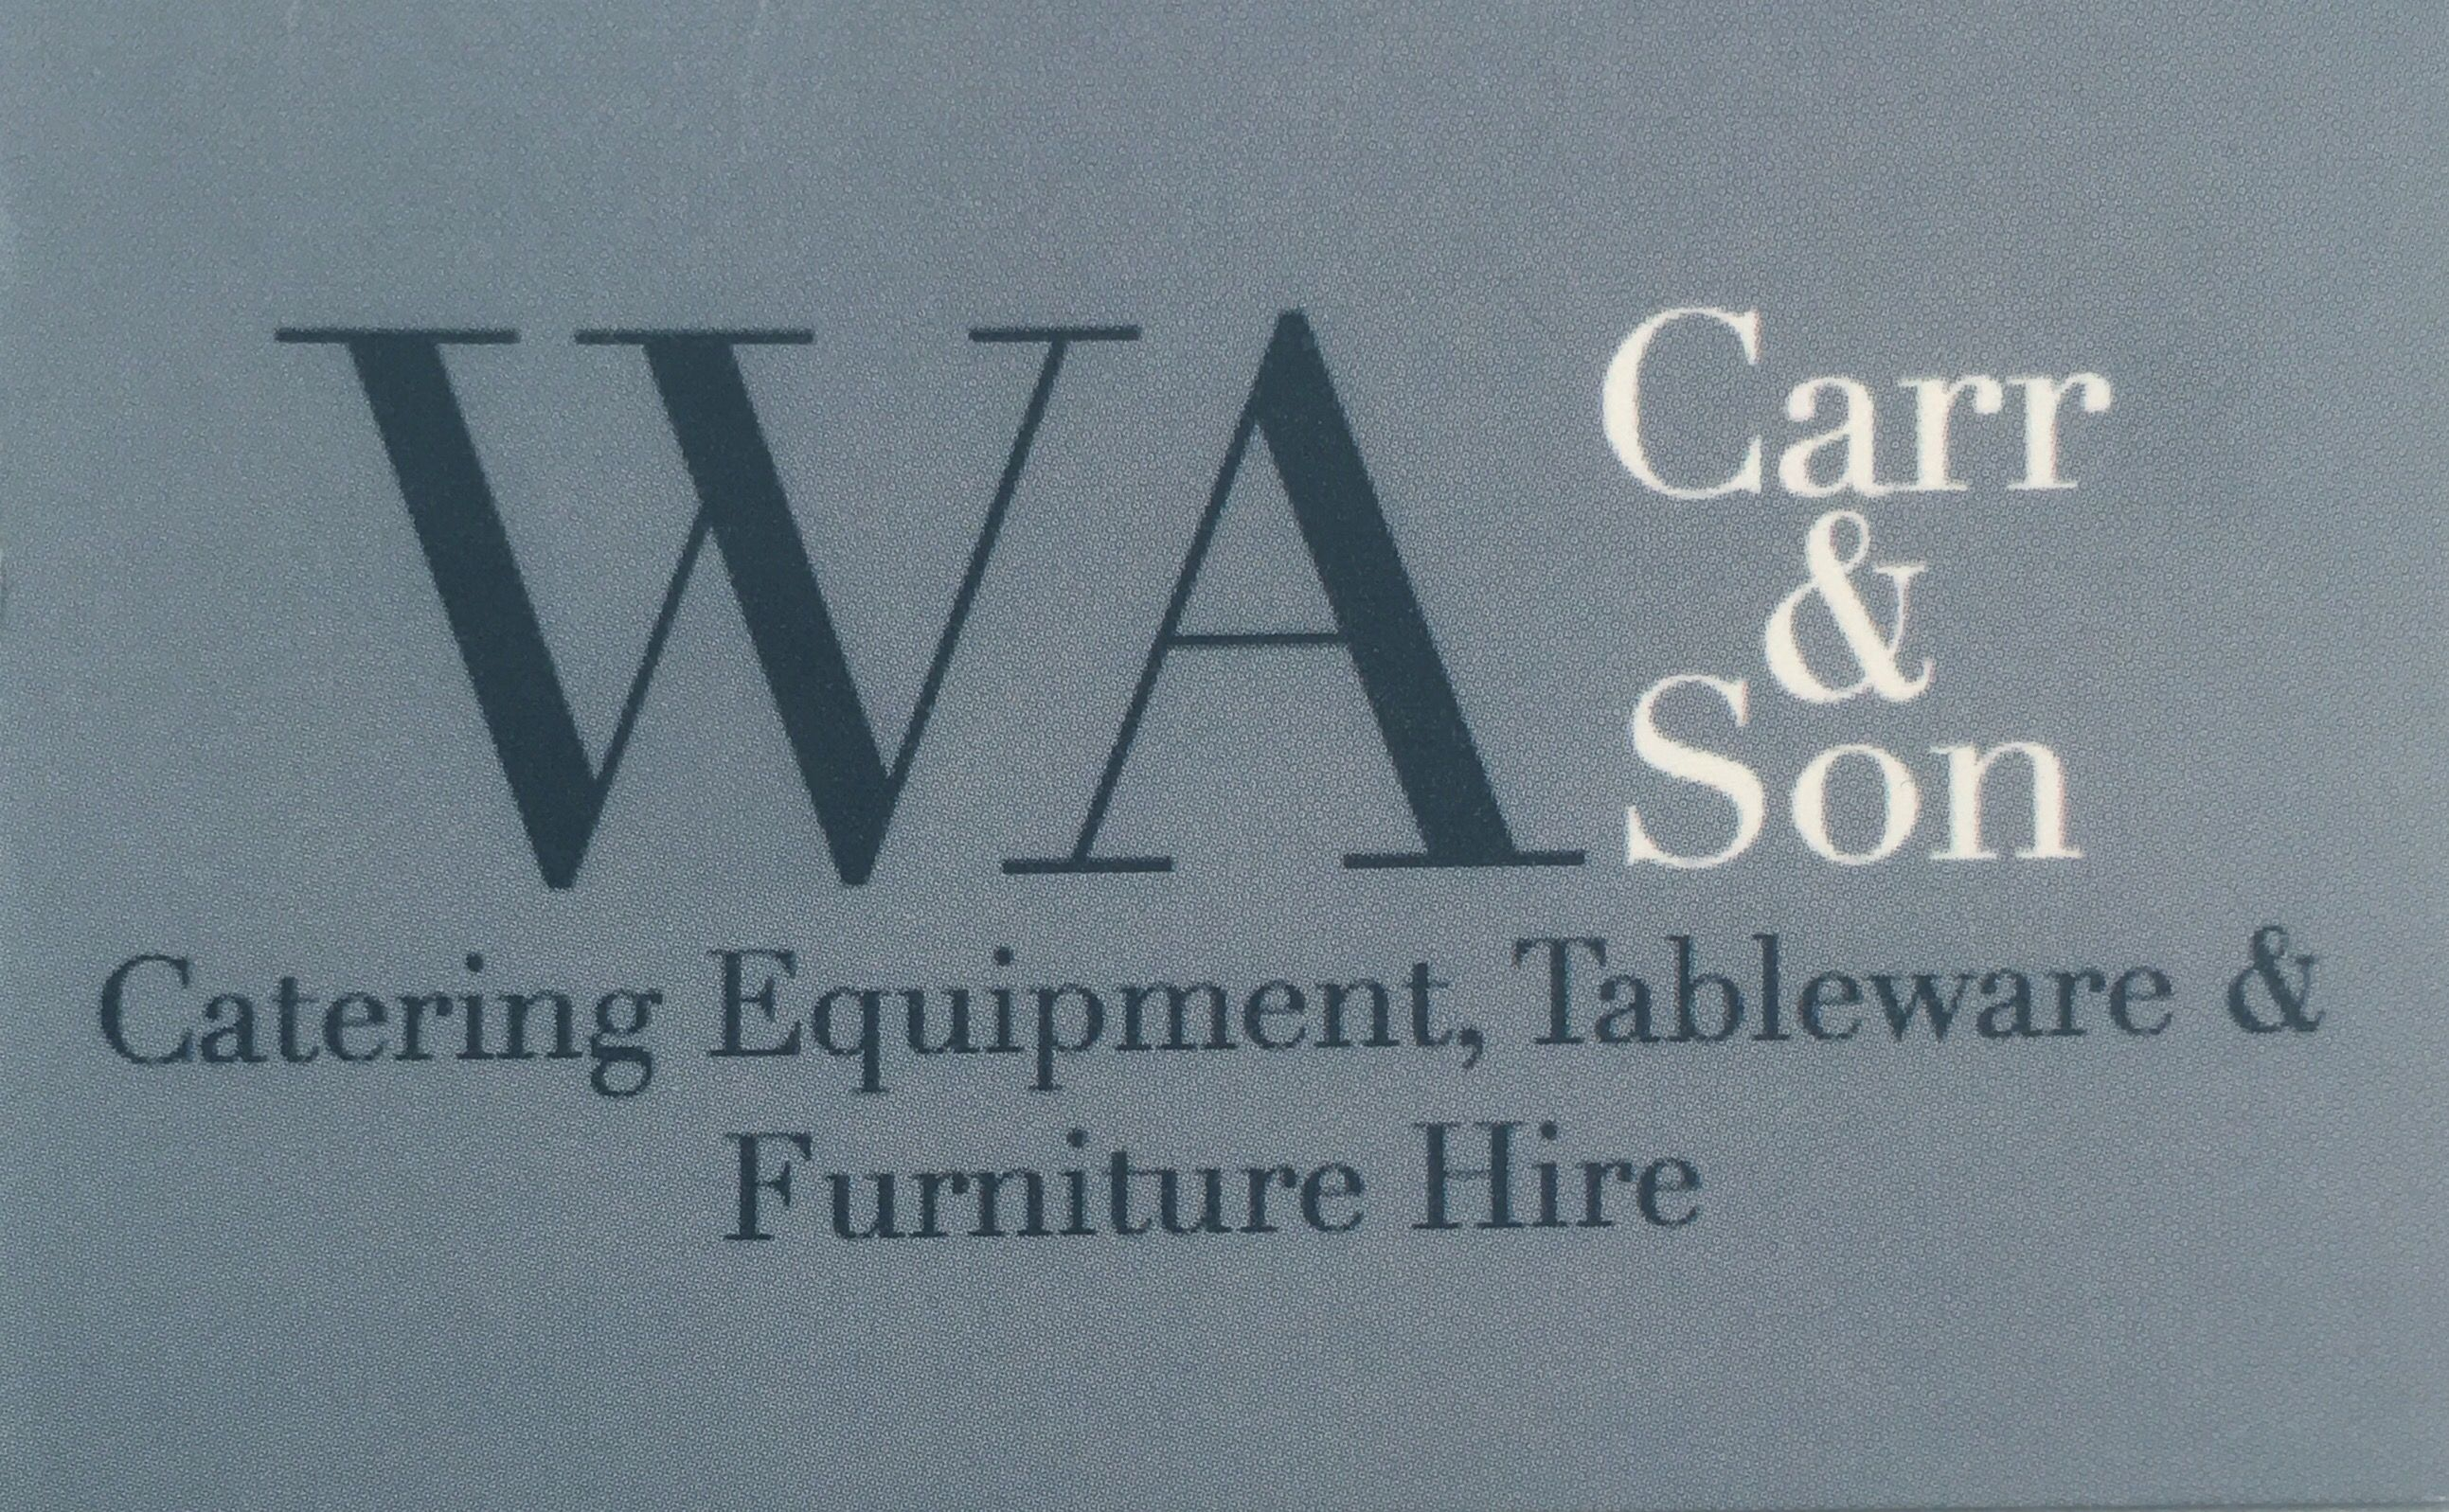 WA Carr & Son joins the WD3 Foodies Team